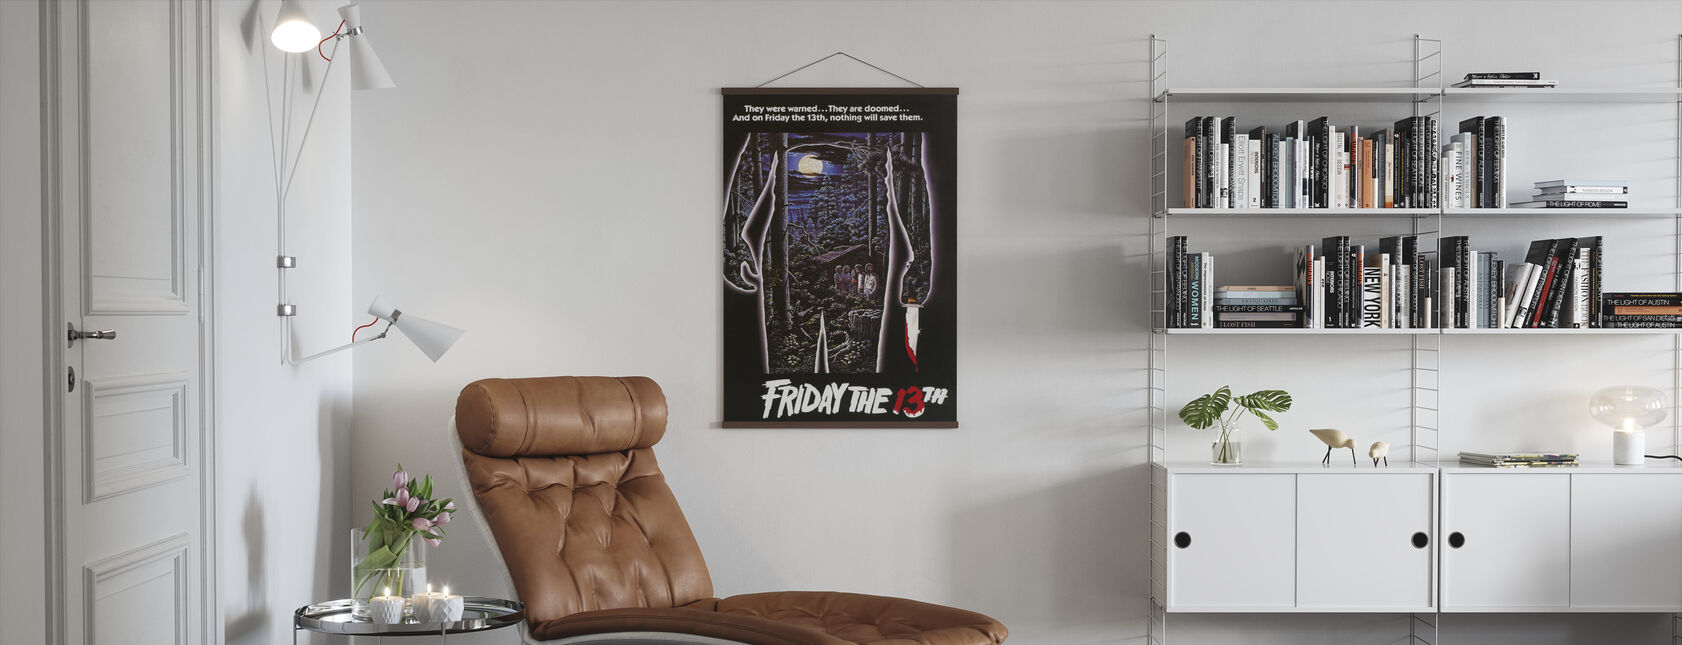 Friday The 13th - Poster - Living Room